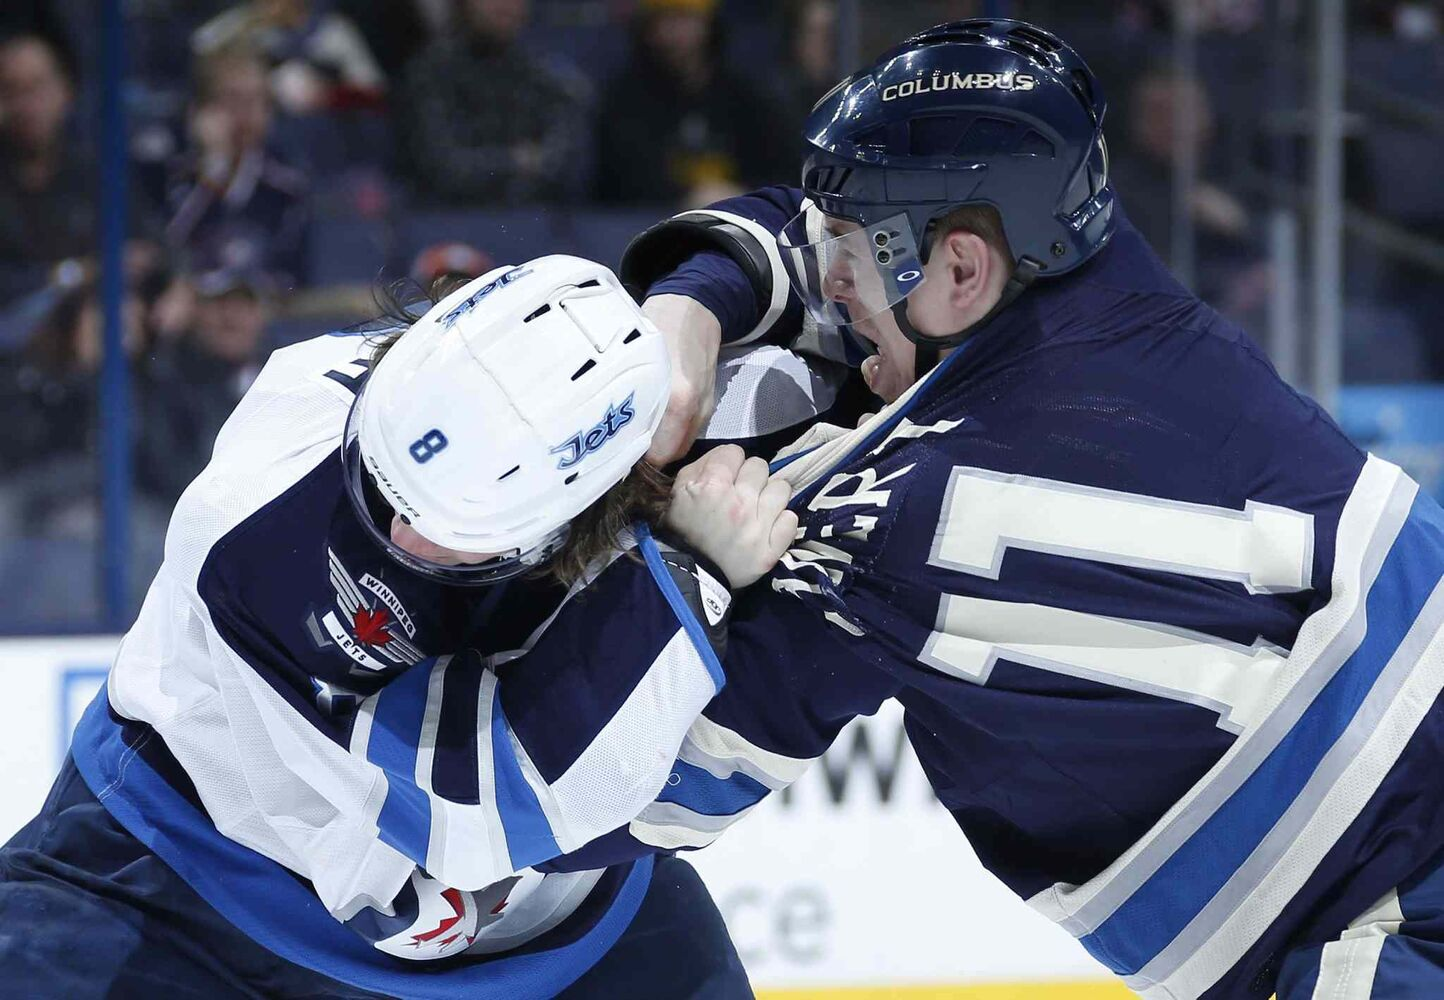 Blue Jackets left wing Matt Calvert (right) and Jets defenseman Jacob Trouba exchange blows during the first period Monday night. (Sam Green / Tribune Media MCT)